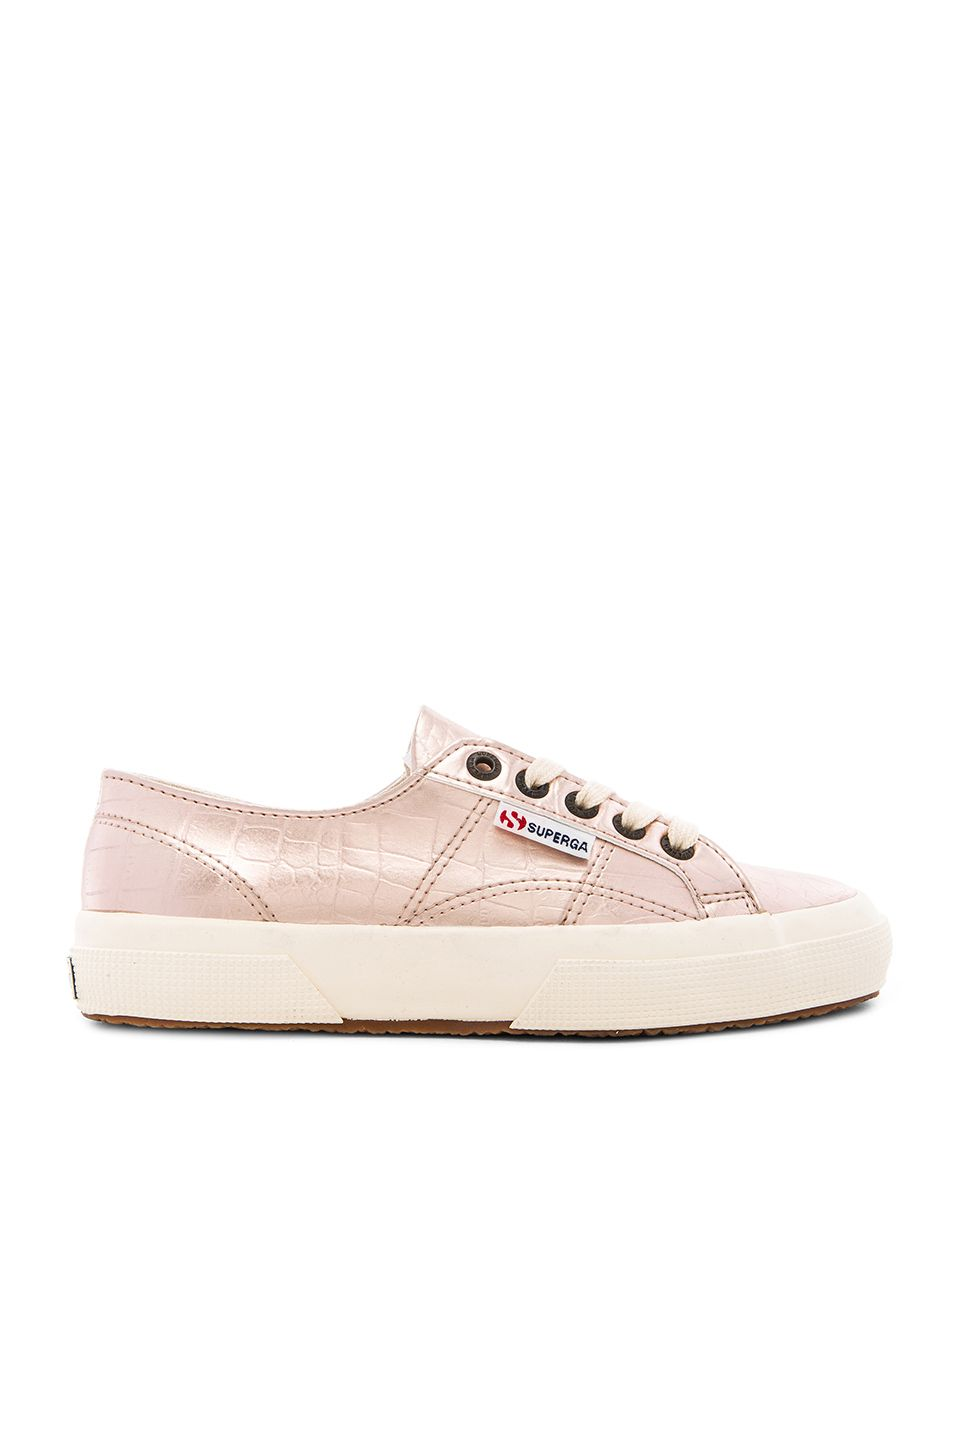 d7f98e736 Superga Slip On Sneaker in Rose Gold on ShopStyle   STYLE   Sneakers ...